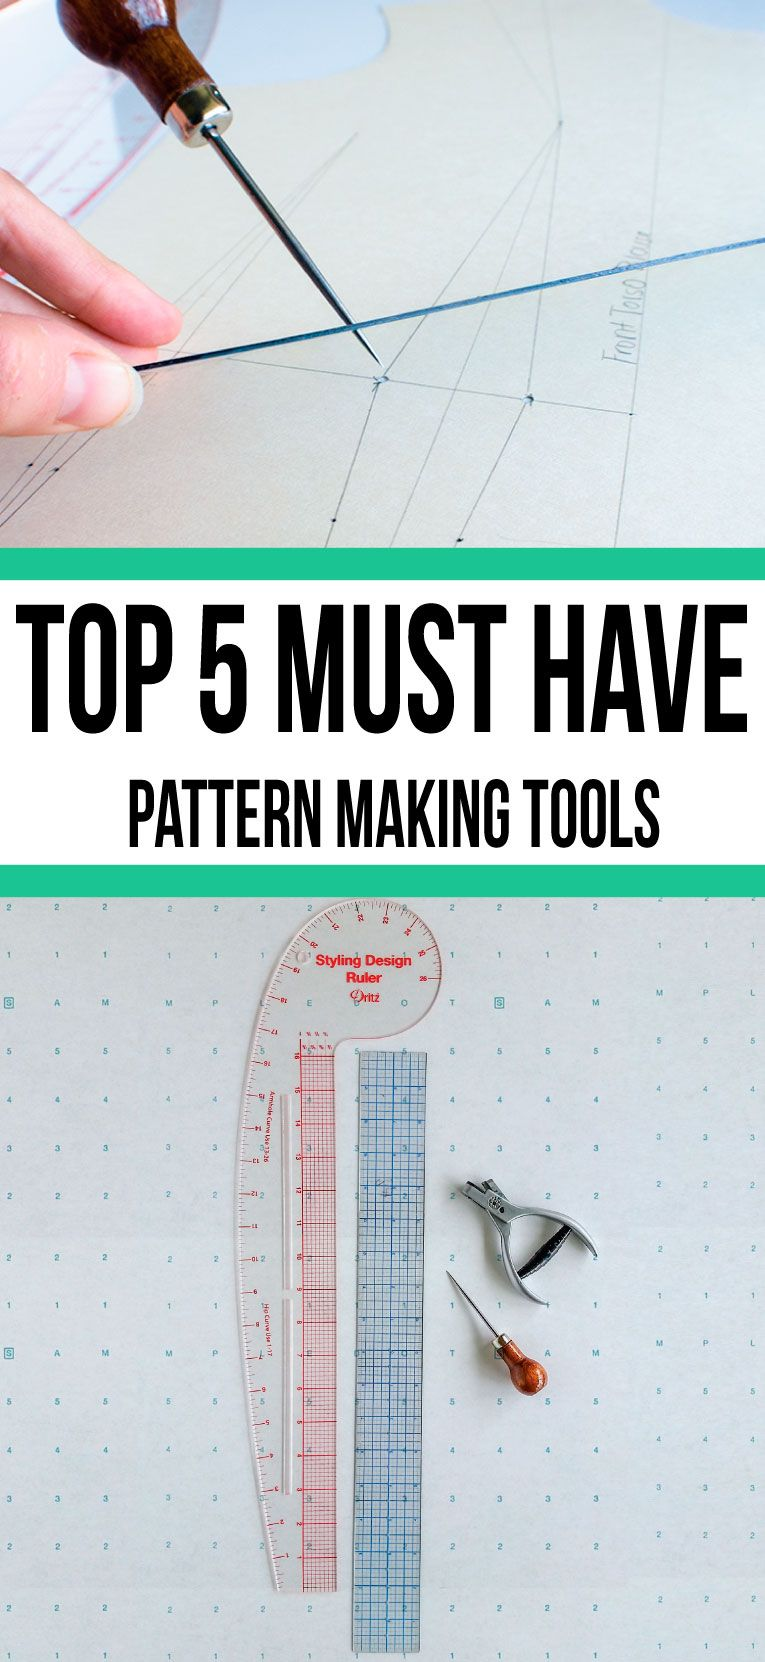 Top 5 MUST HAVE pattern making tools | Sewing | Pinterest | Patterns ...